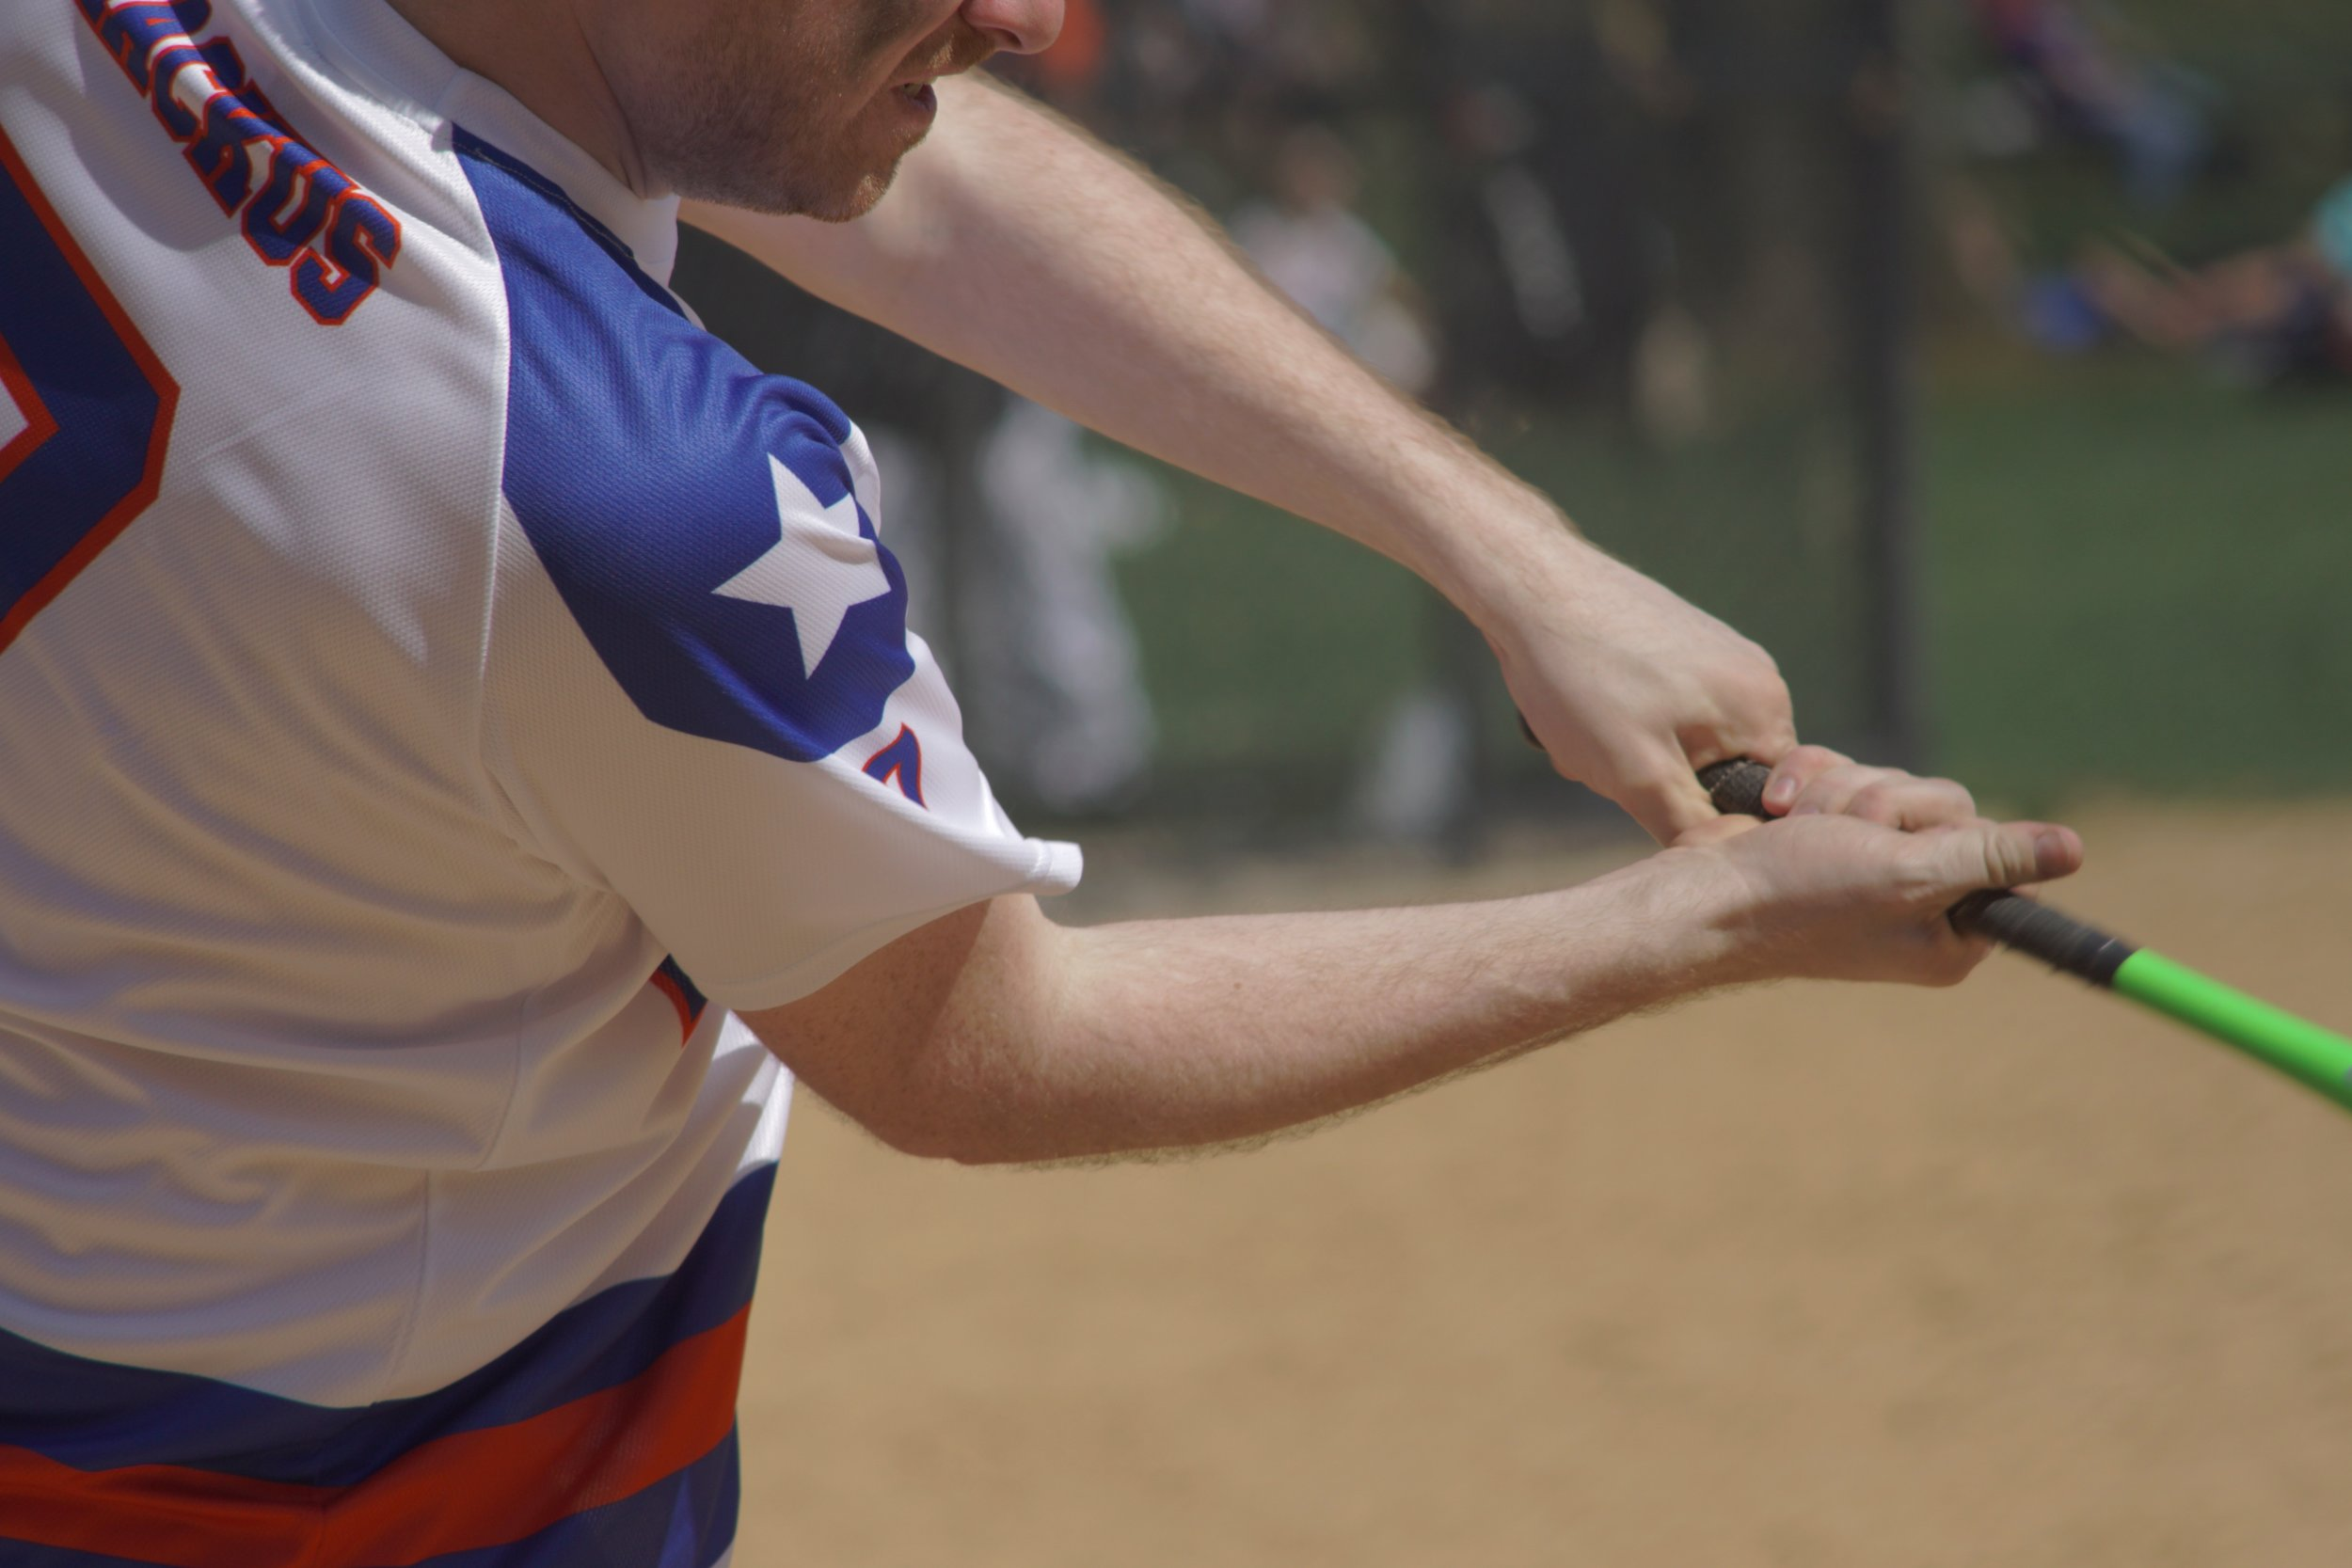 Street Photography with A Telephoto Lens, home run batter